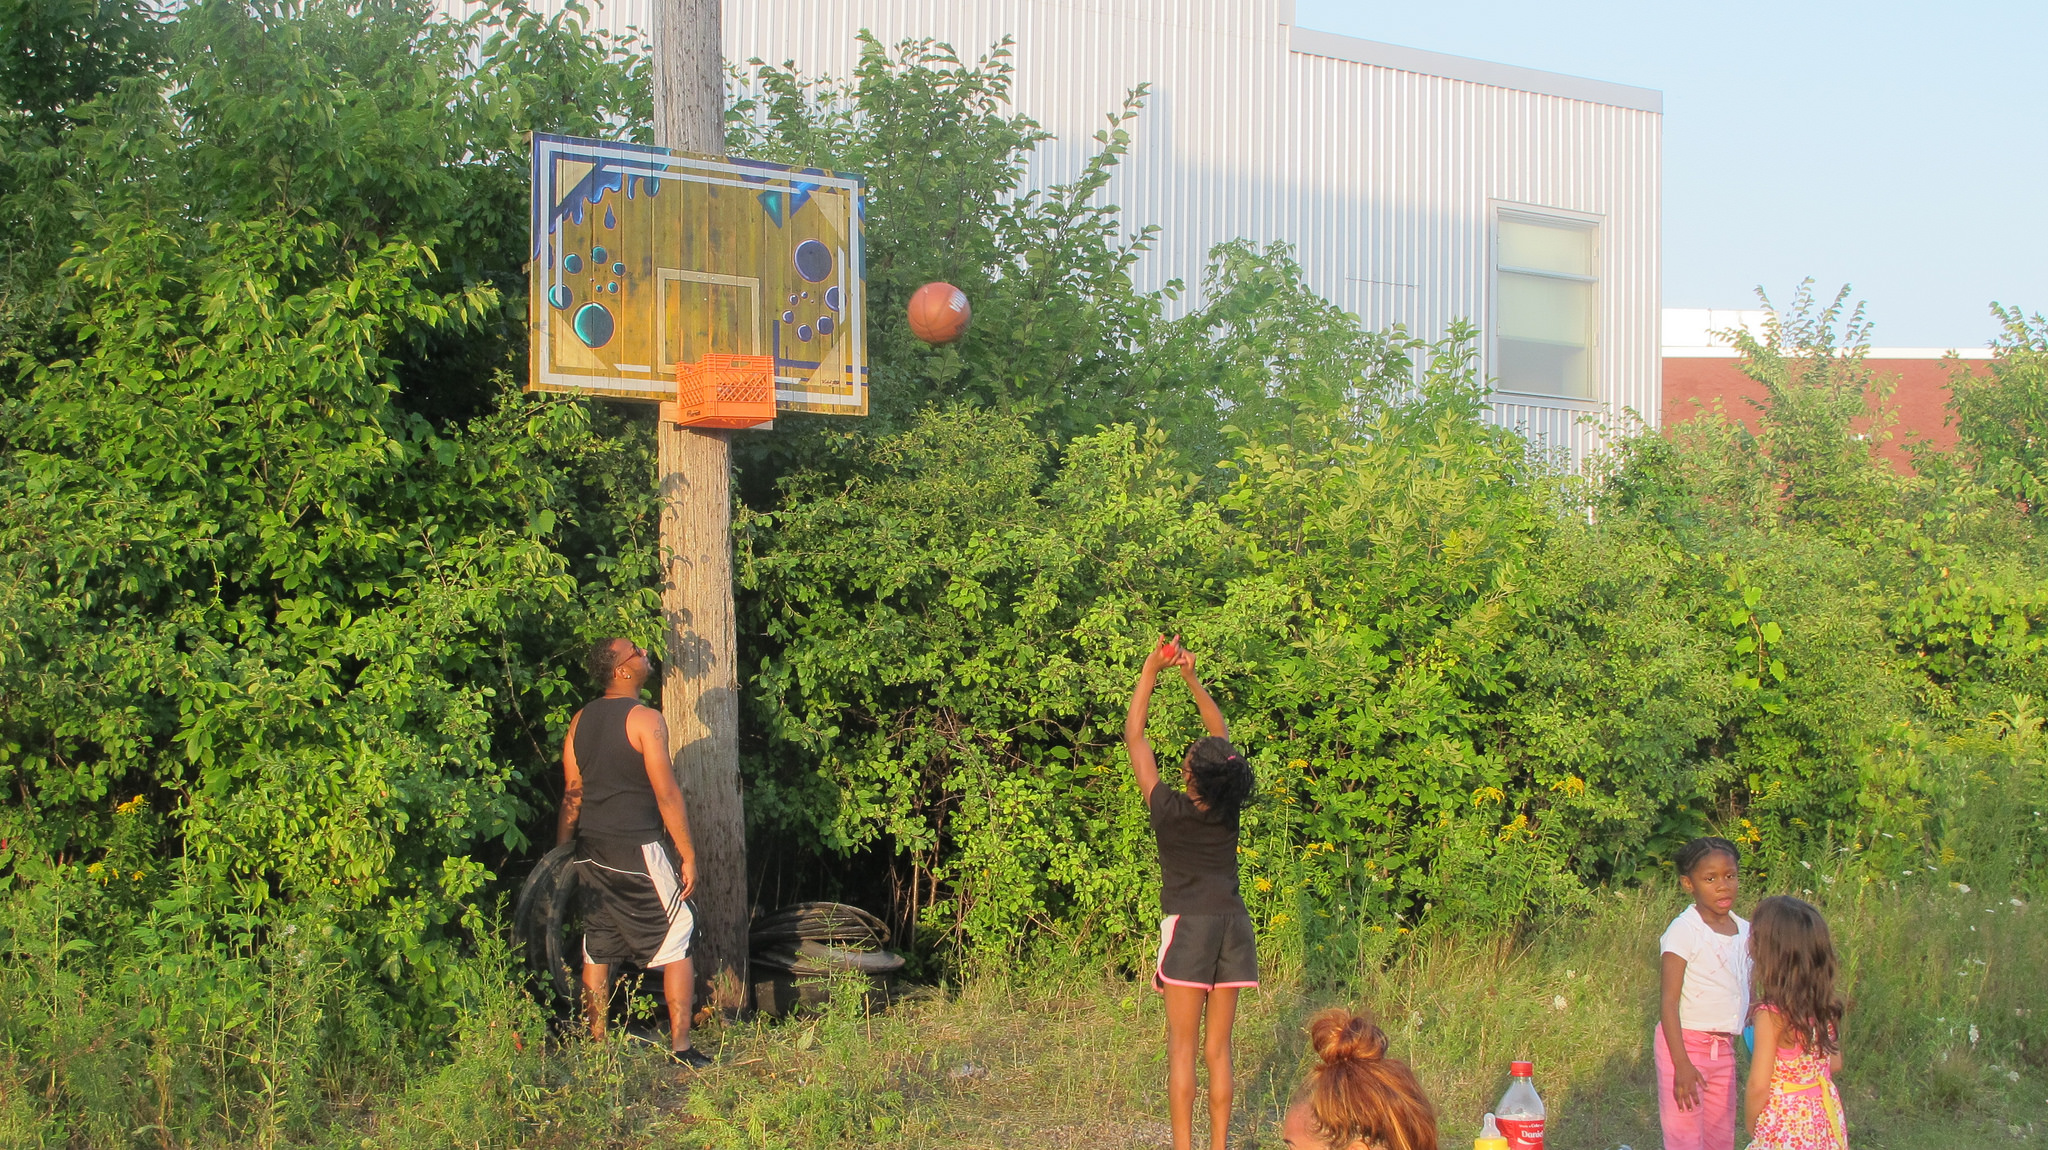 Vedale Hill's daughter Jazale shoots baskets at his hoop crate as he waits to catch the ball. (Photo by Andrea Waxman)